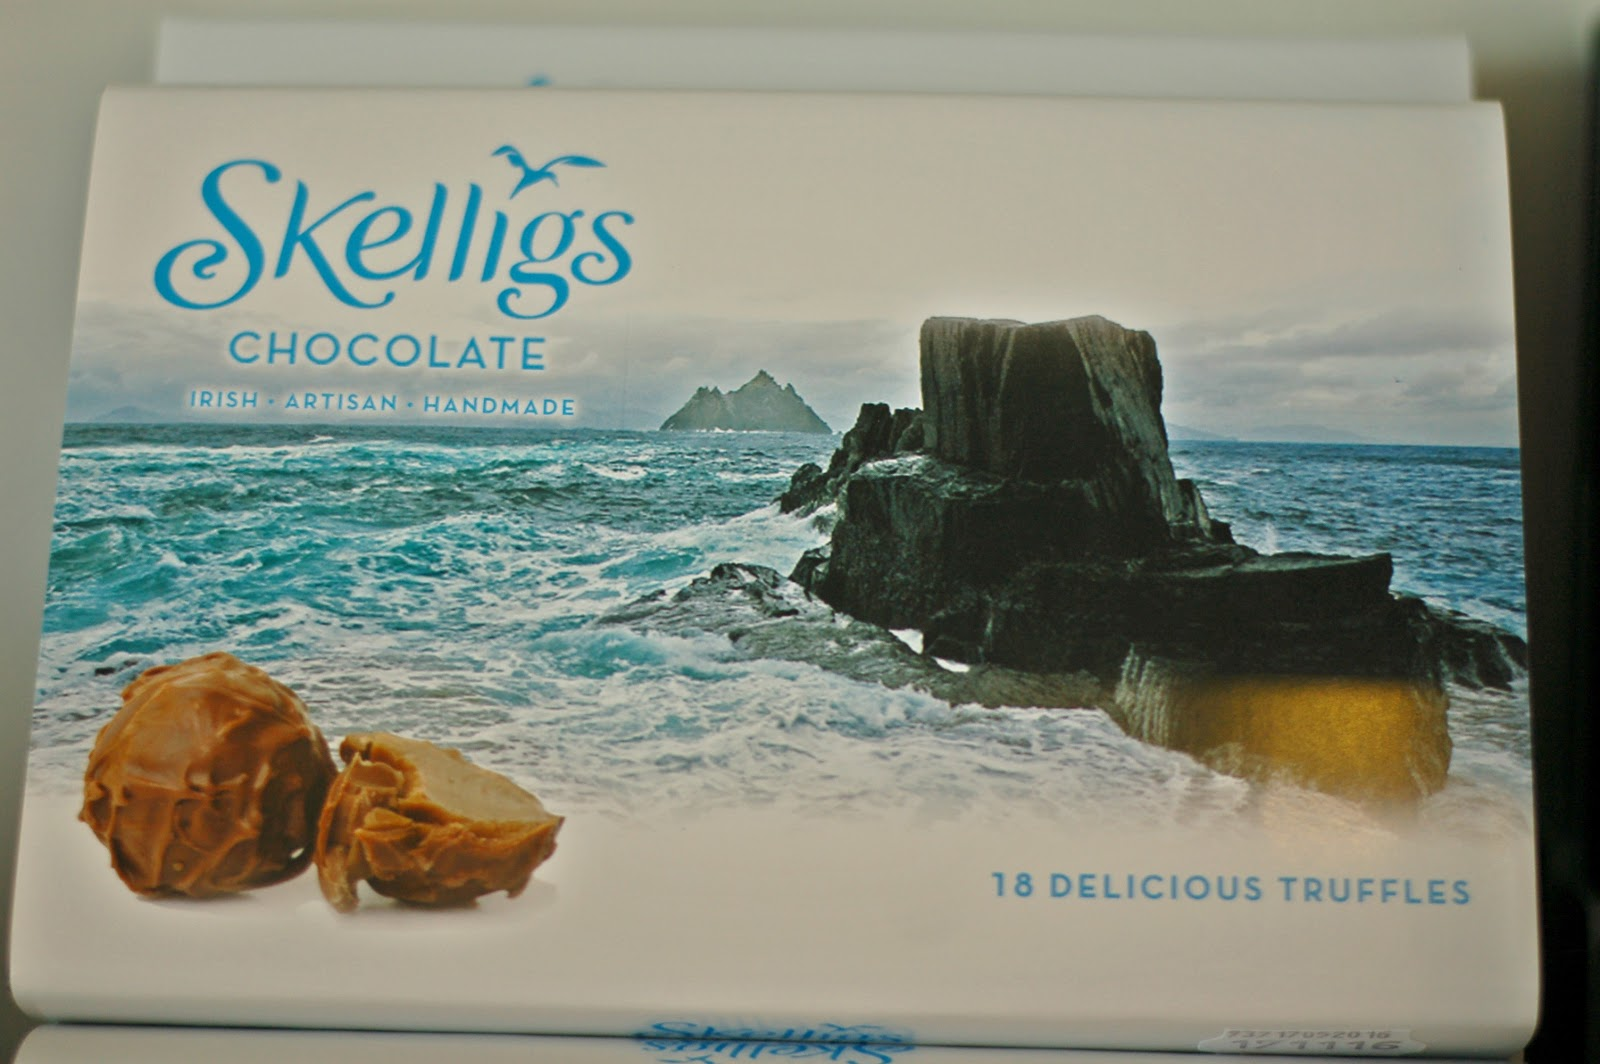 skelligs chocolate, kerry